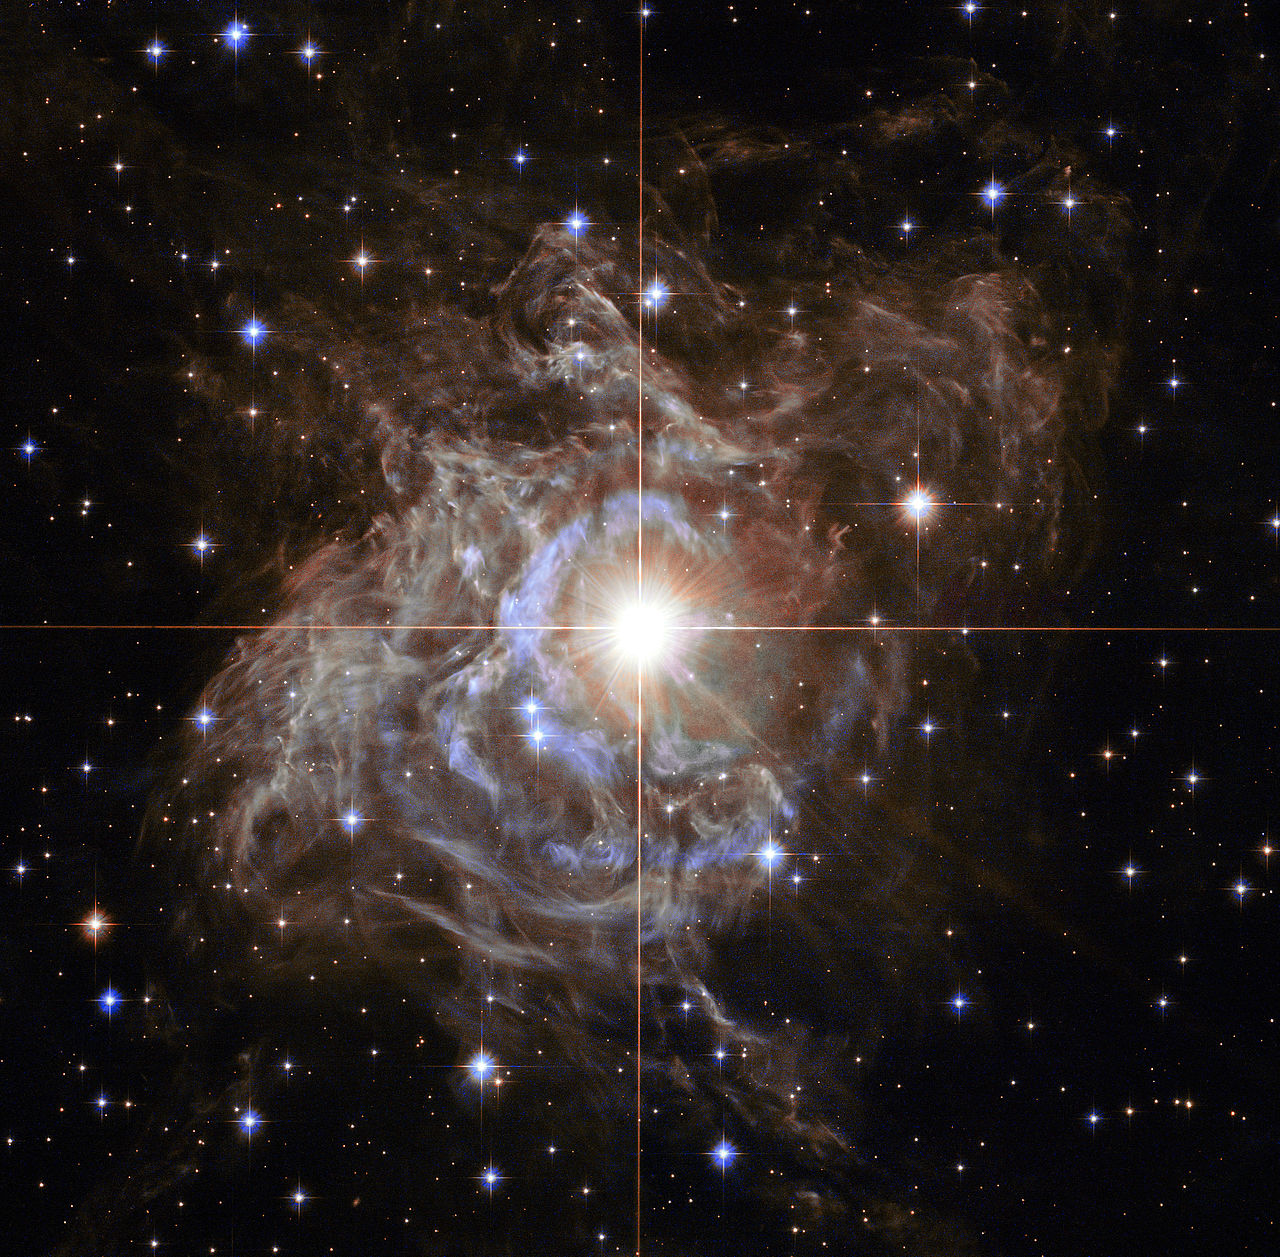 This Hubble image shows RS Puppis, a type of variable star known as a Cepheid variable. As variable stars go, Cepheids have comparatively long periods— RS Puppis, for example, varies in brightness by almost a factor of five every 40 or so days. RS Puppis is unusual; this variable star is shrouded by thick, dark clouds of dust enabling a phenomenon known as a light echo to be shown with stunning clarity. These Hubble observations show the ethereal object embedded in its dusty environment, set against a dark sky filled with background galaxies.